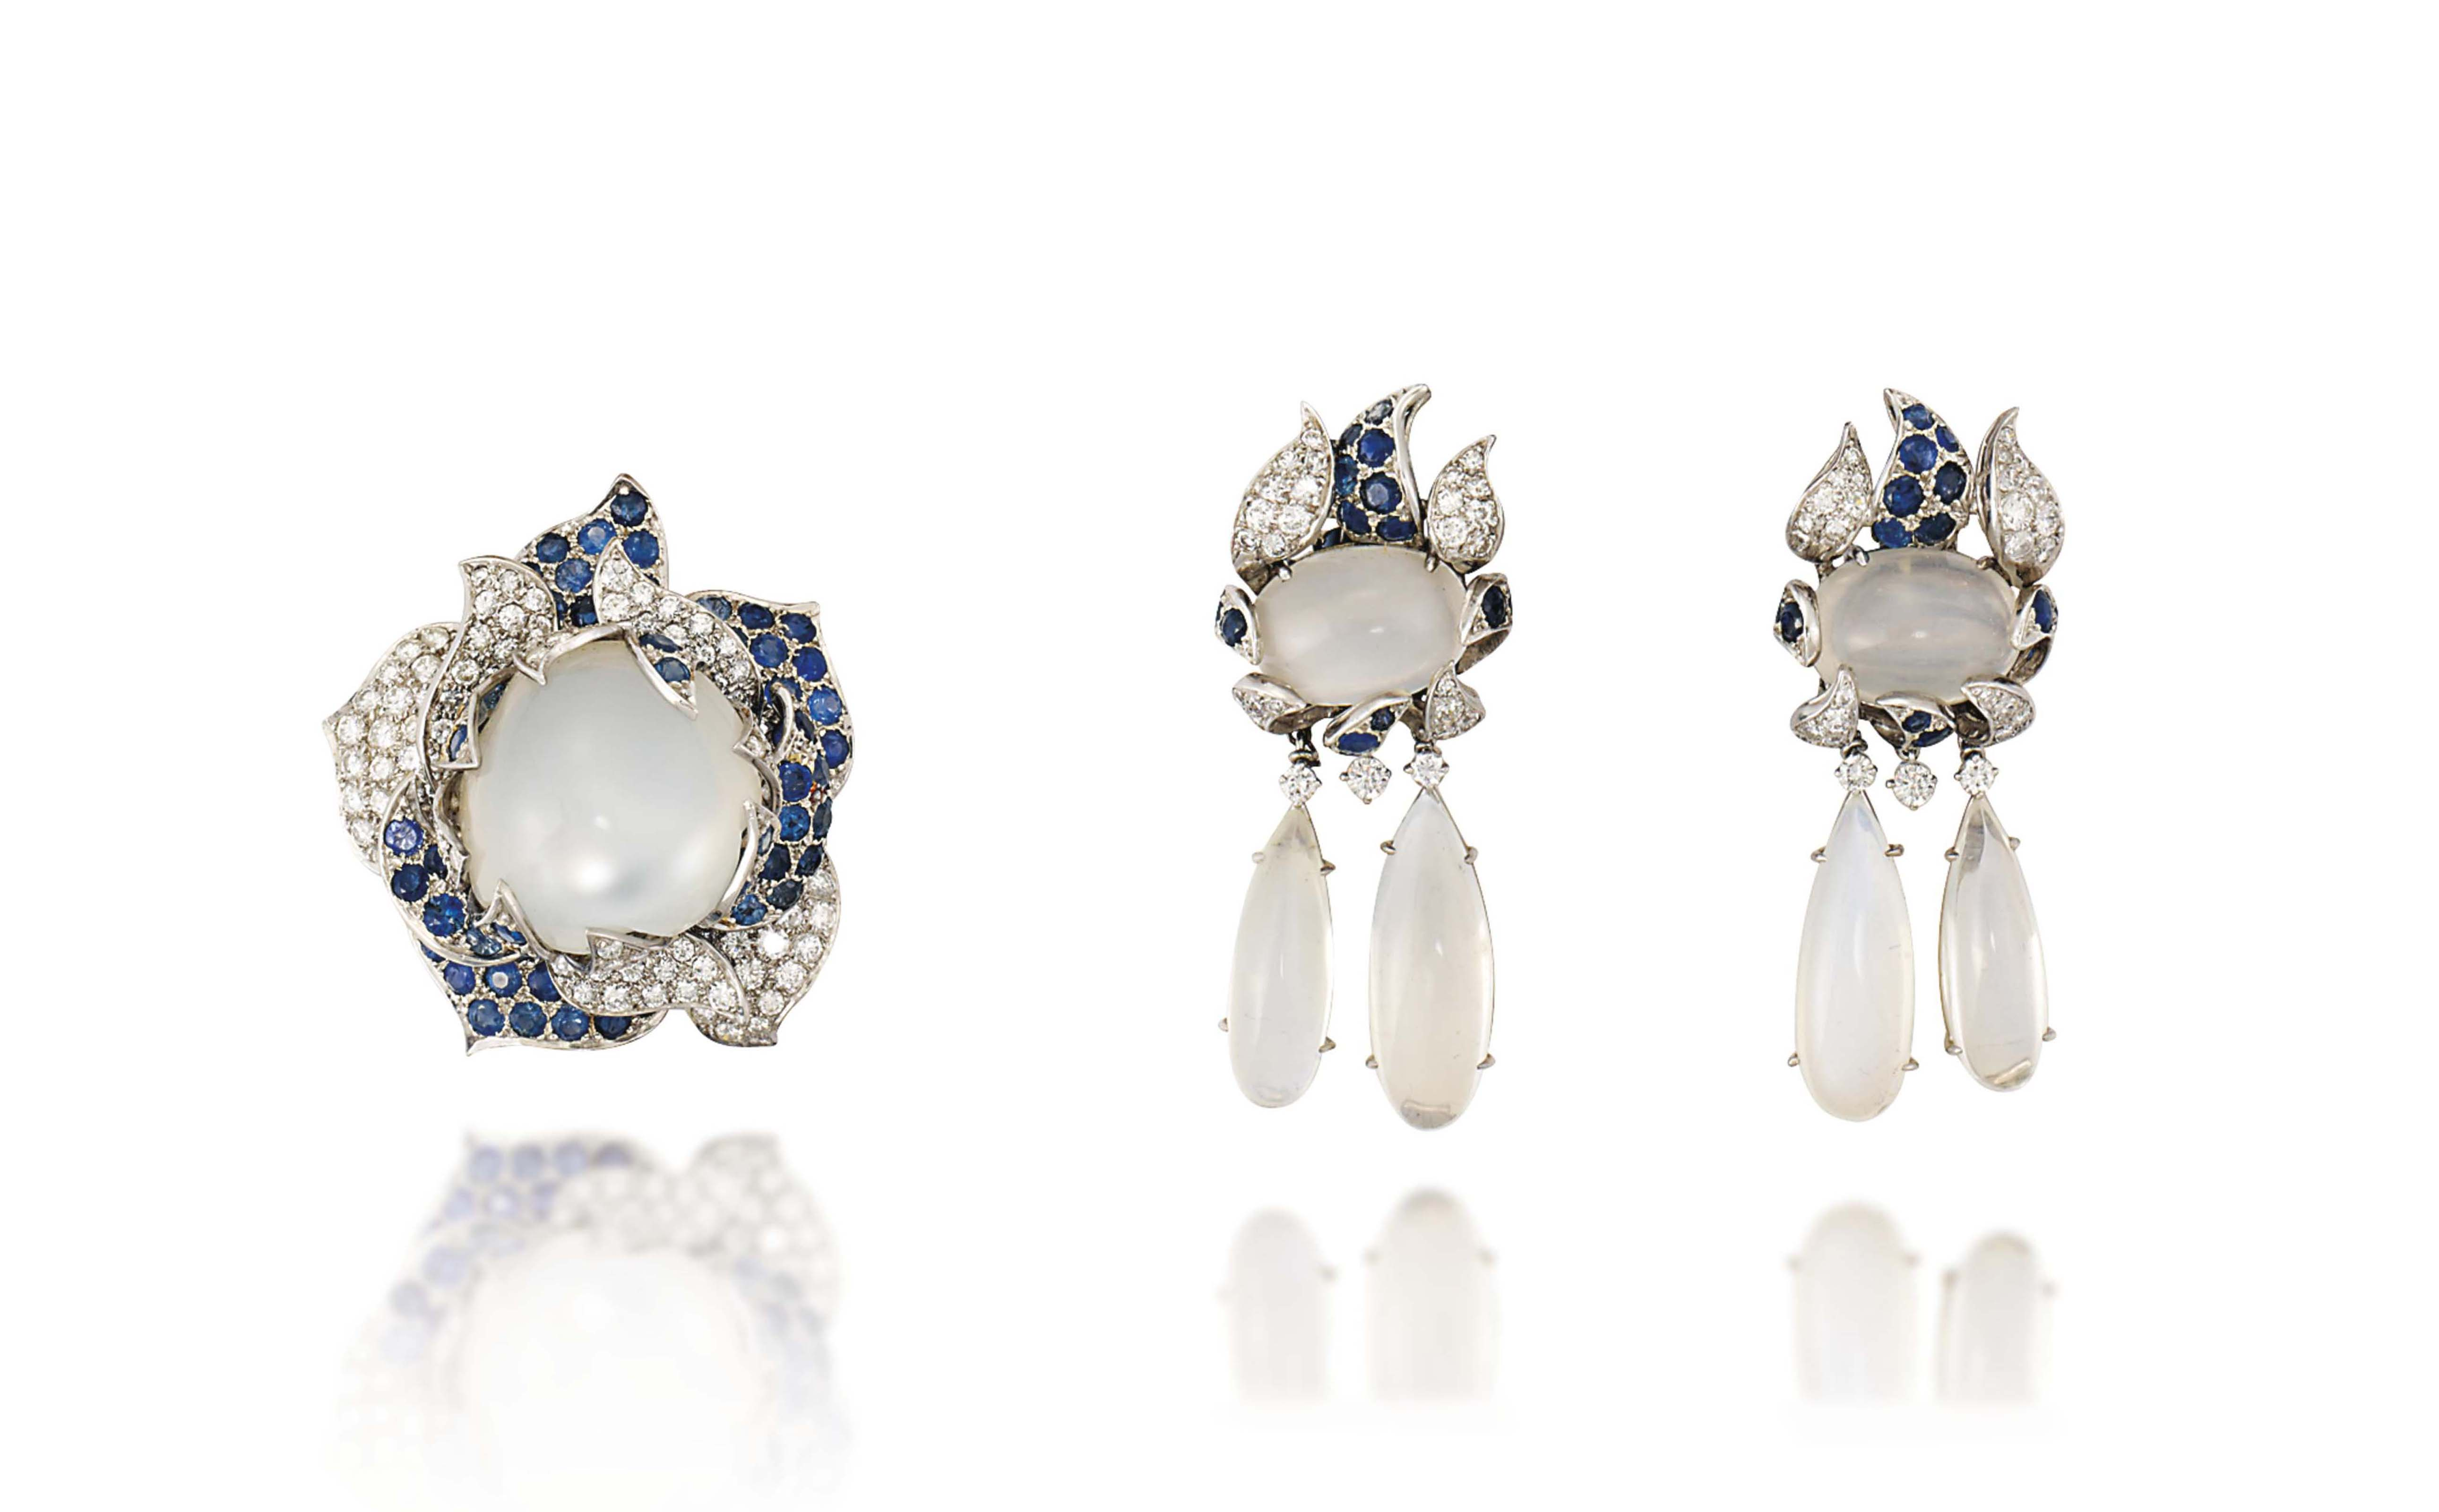 A SUITE OF MOONSTONE, SAPPHIRE AND DIAMOND JEWELLERY, BY VERDURA